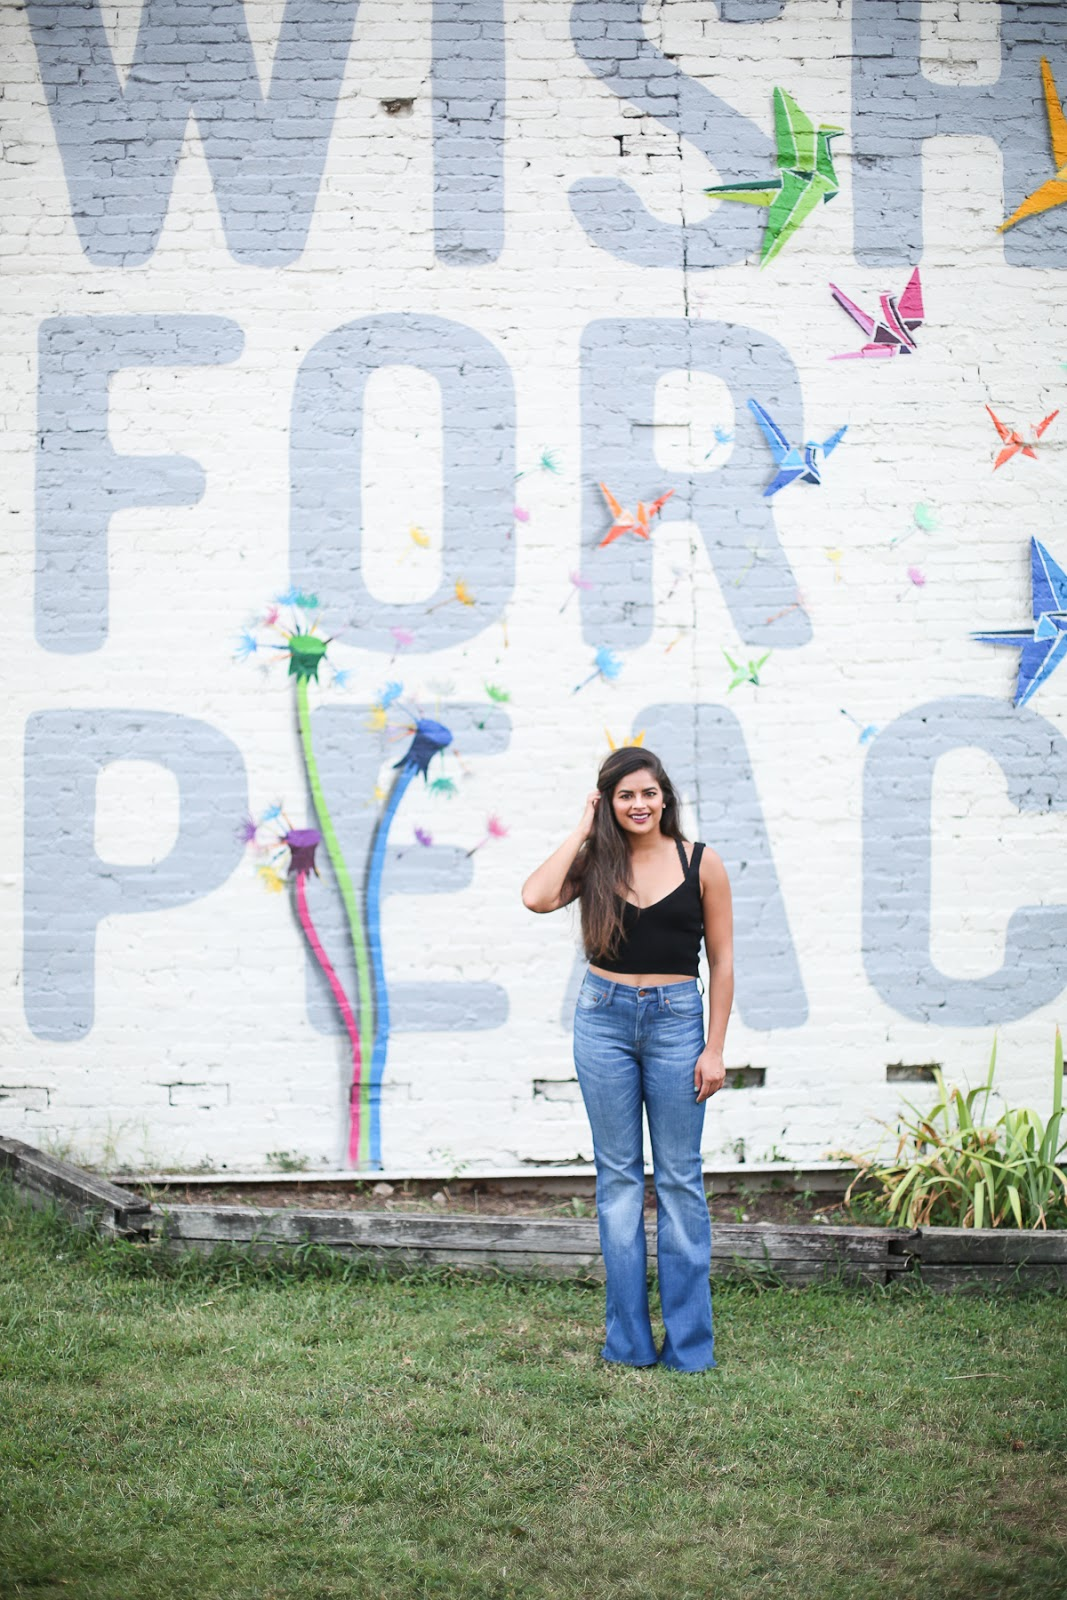 Priya the Blog, Nashville fashion blog, Nashville fashion blogger, Nashville style blog, Nashville style blogger, Nashville mural, Nashville Wish for Peace mural, Summer outfit, Madewell Flea Market Flares, flared jeans, how to wear flared jeans, knit crop top, Zara knit crop top, how to wear a knit crop top,